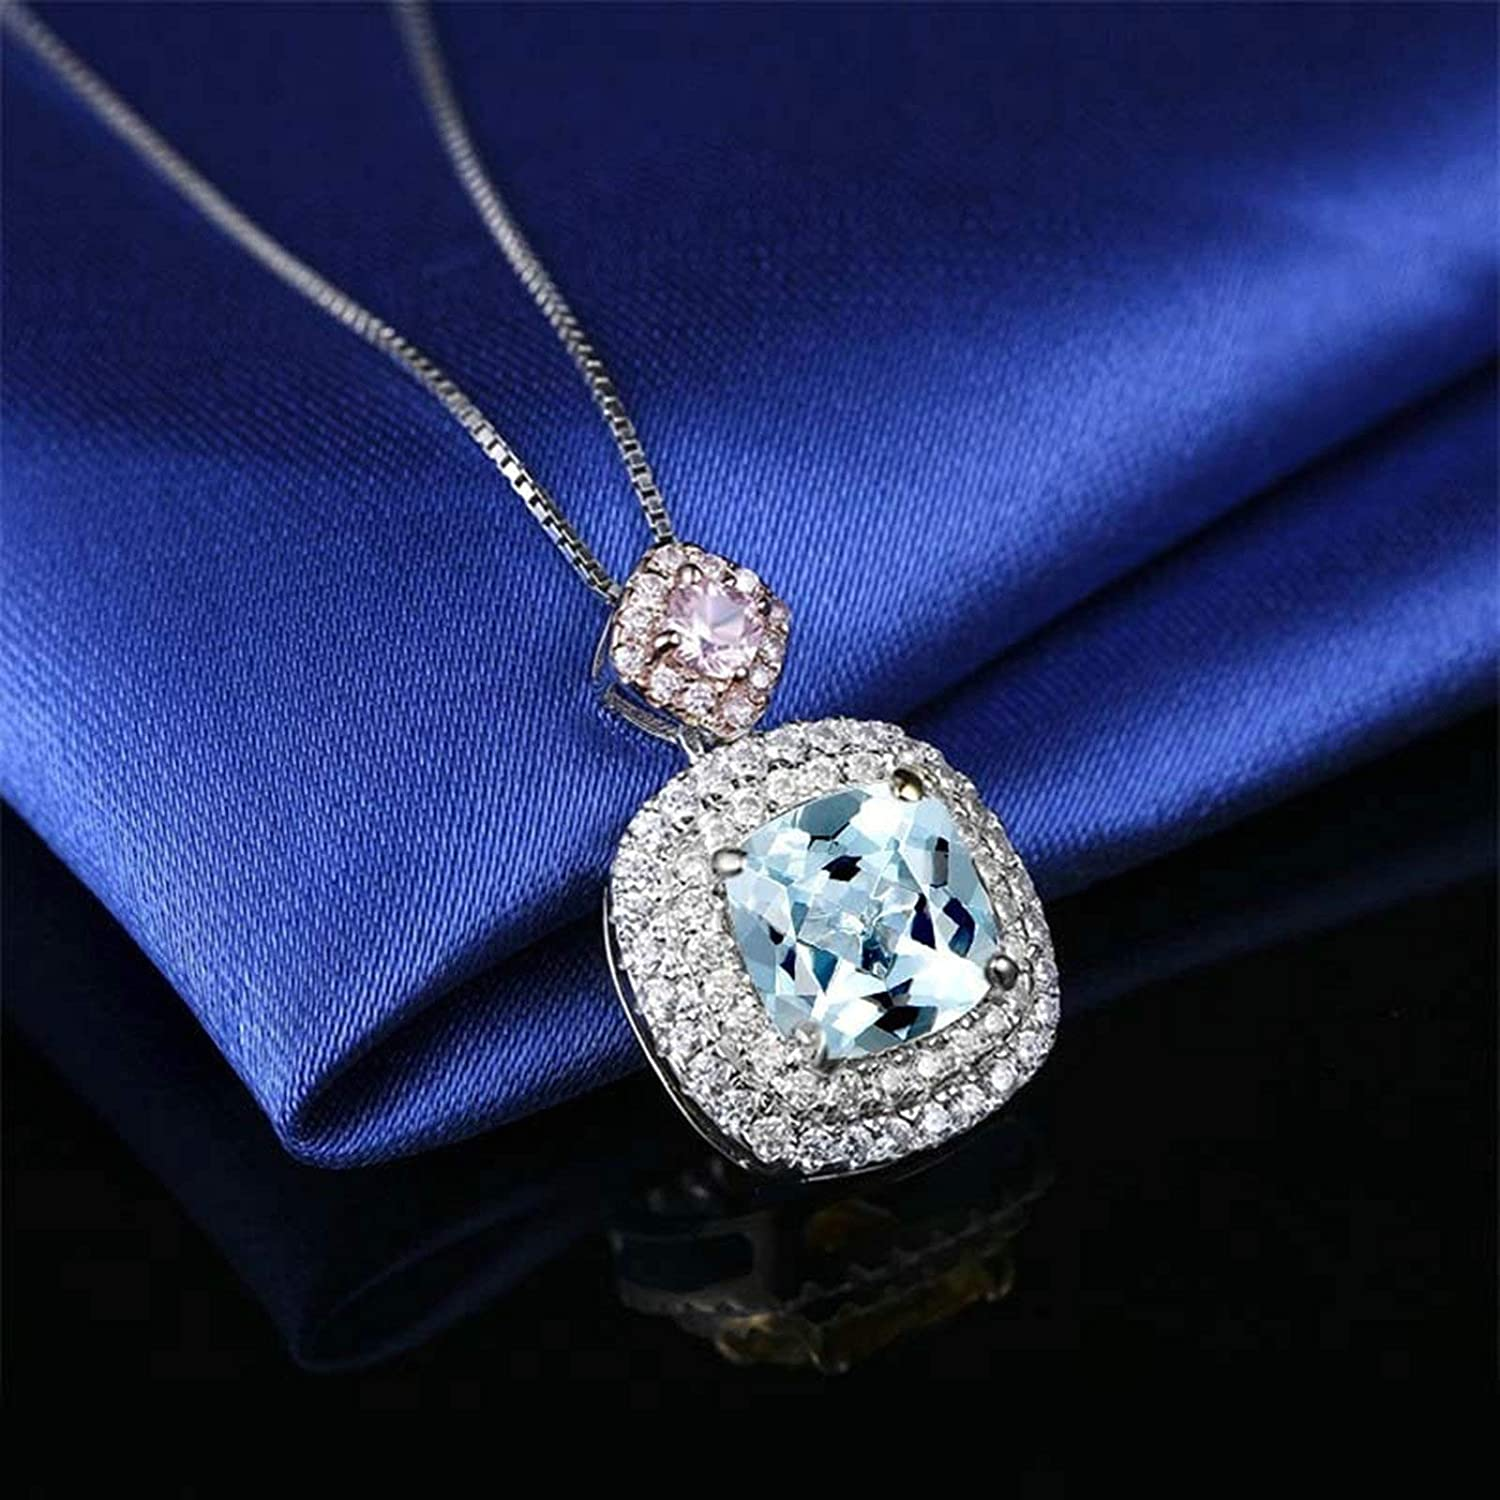 Beydodo 925 Sterling Silver Necklace with Pendant Square Pendant Cushion Topaz Wedding Necklace Pendant